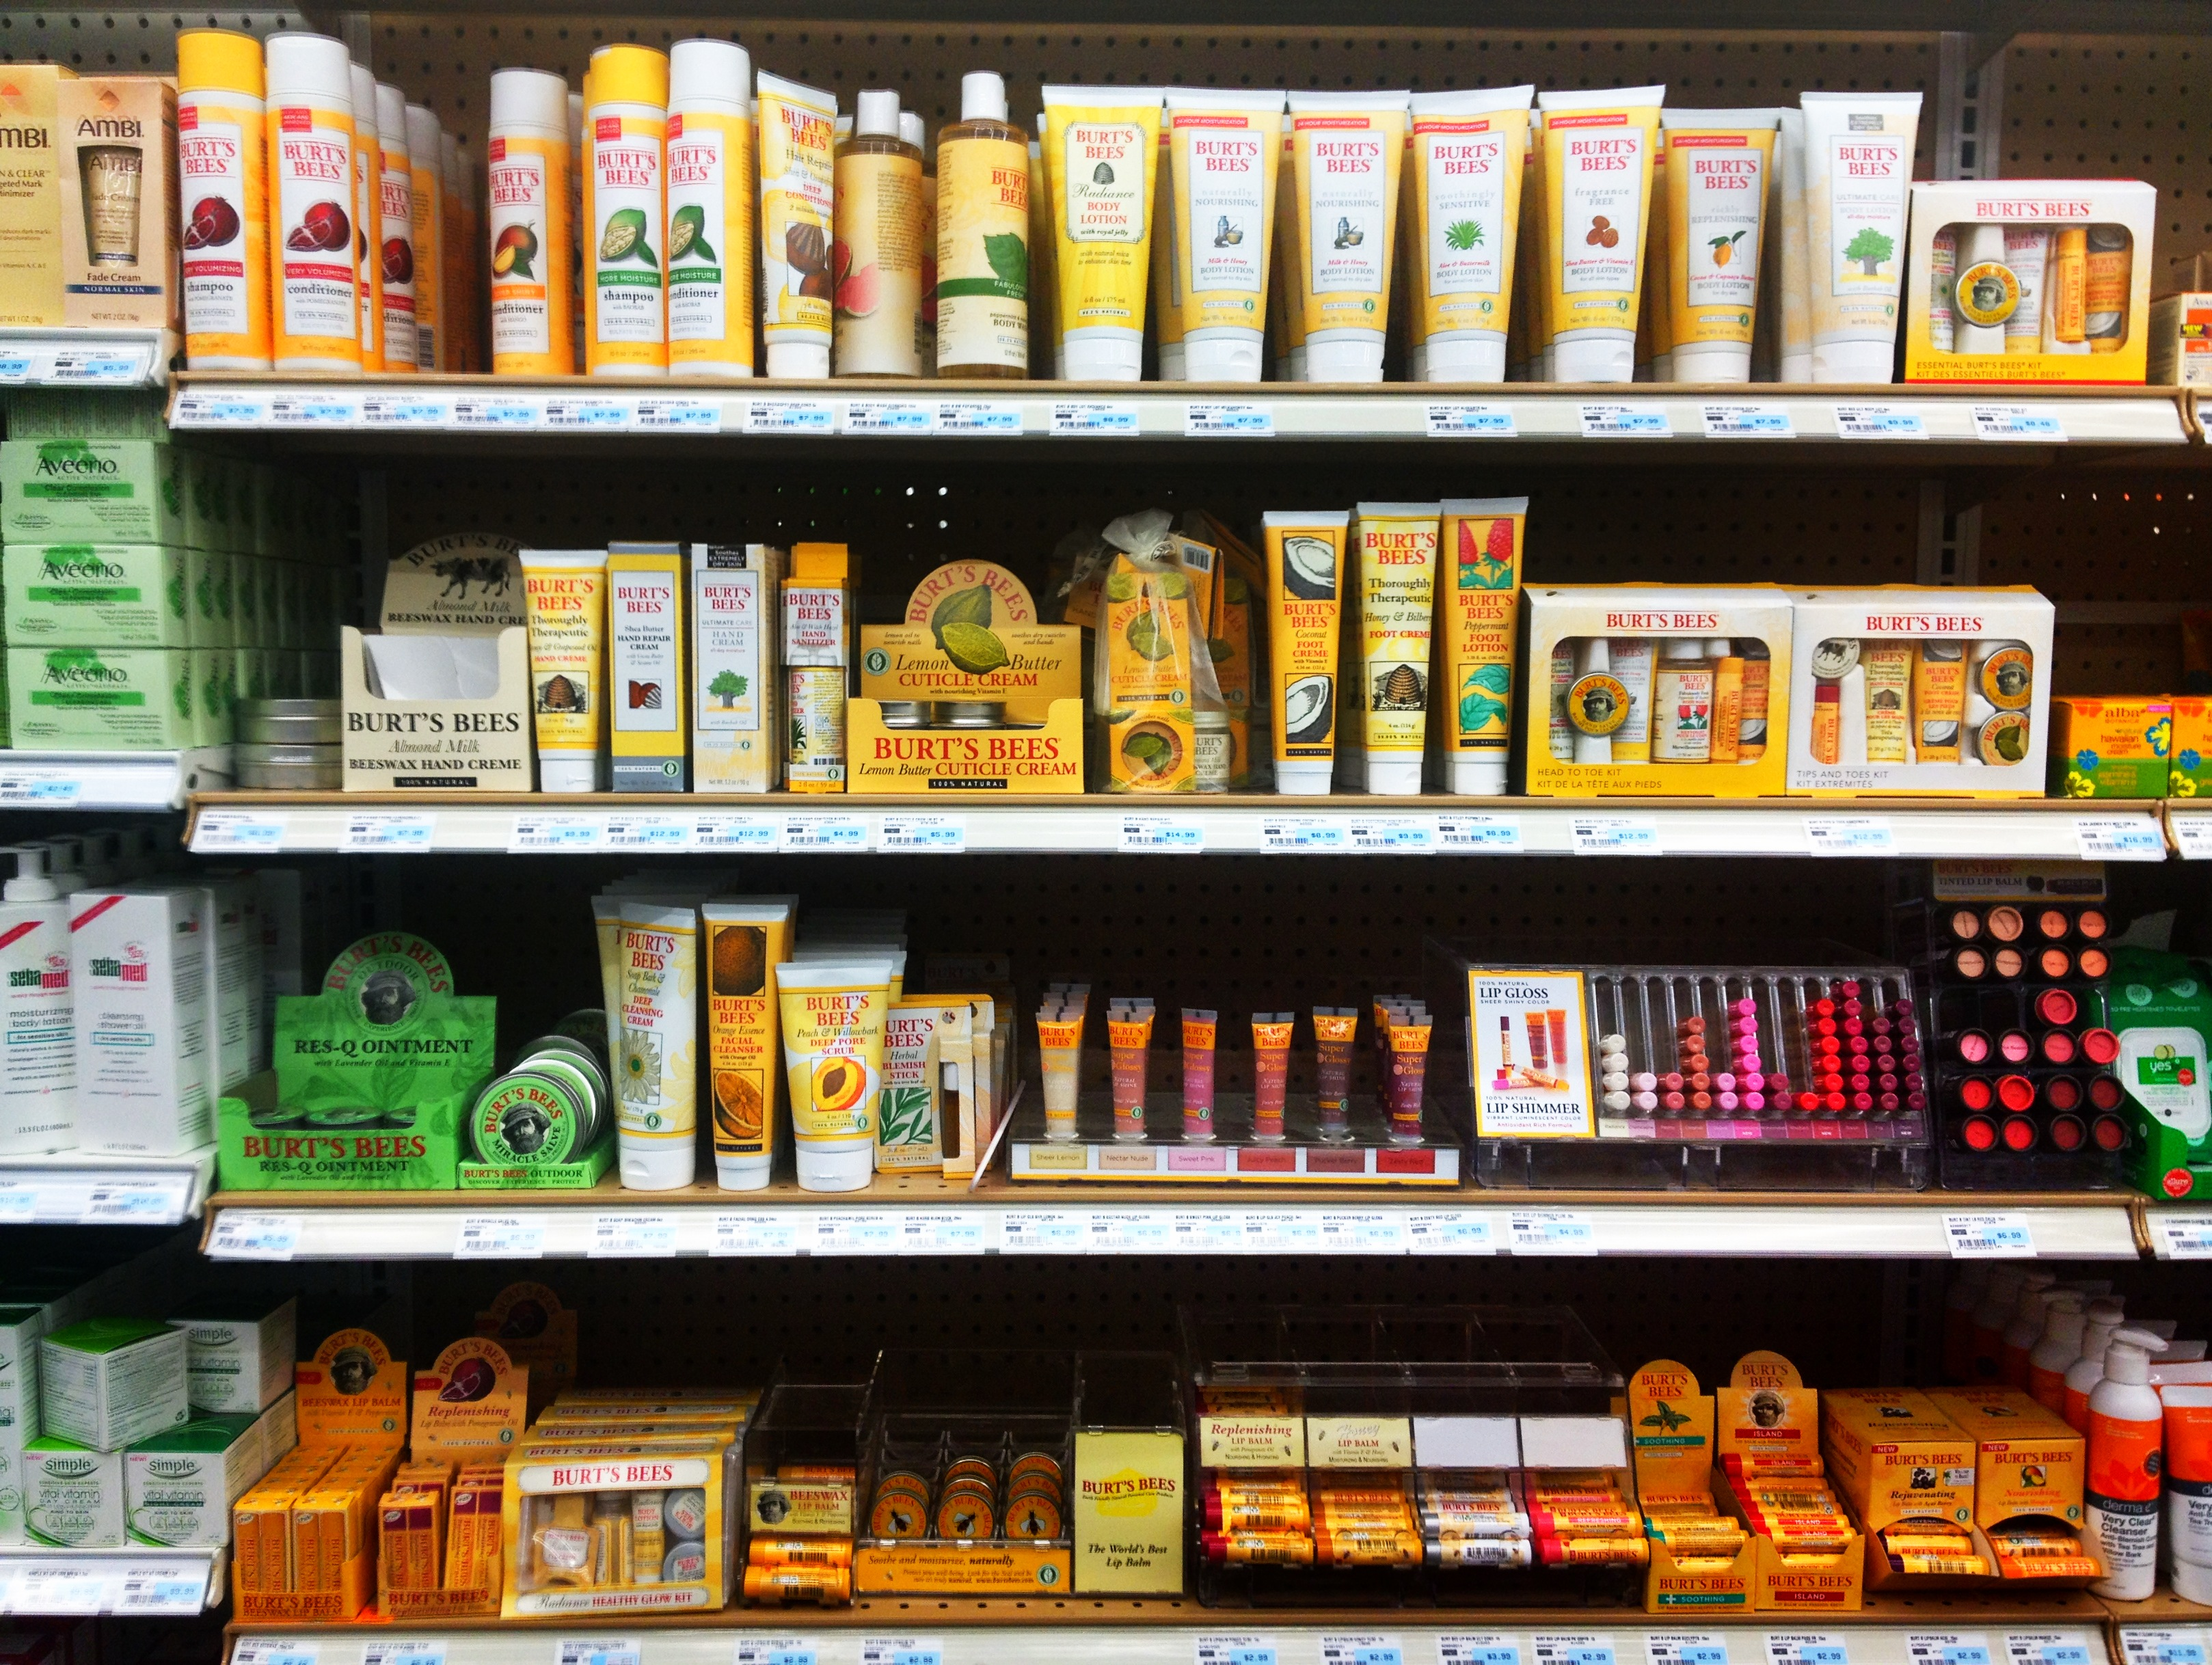 File:Burt's Bees Products, Sep 2012.JPG - Wikimedia Commons